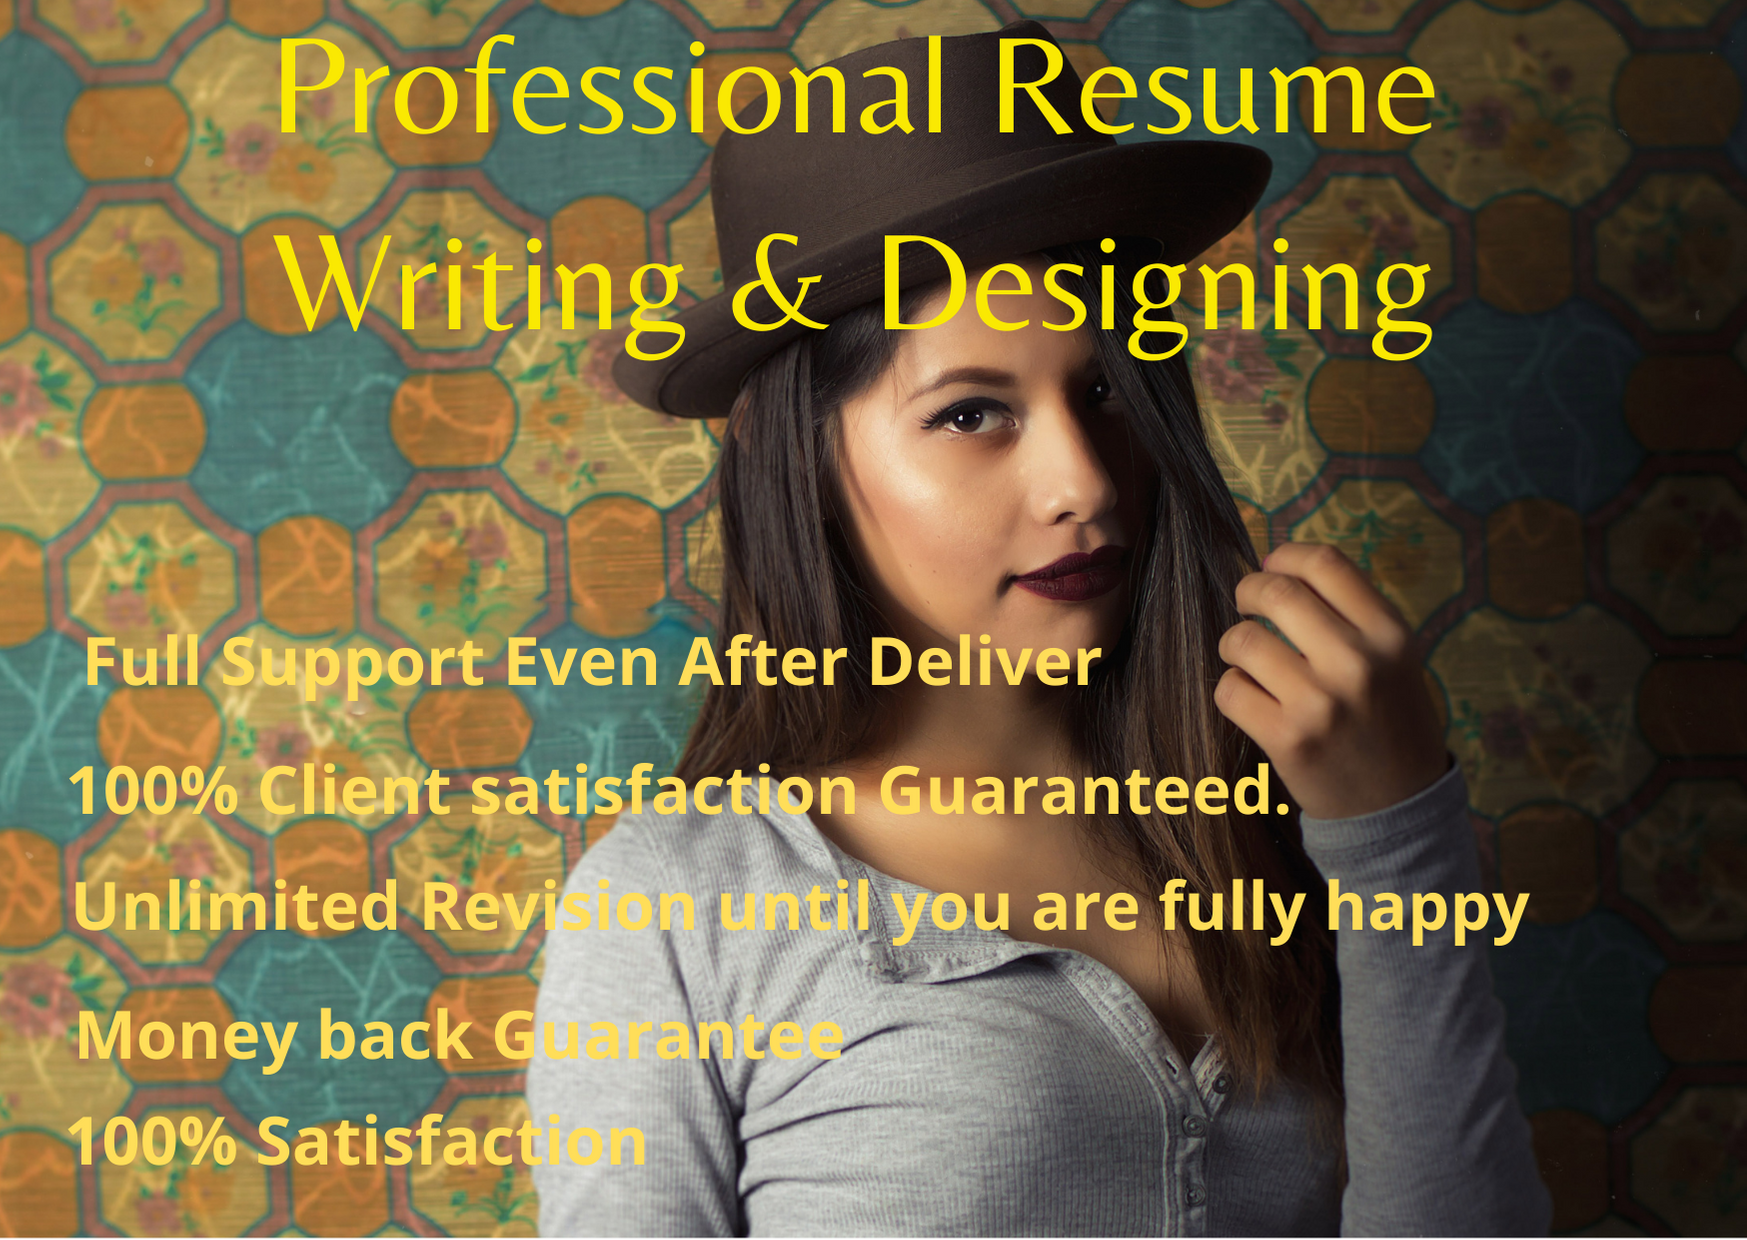 I will provide professional resume writing and designing service for you